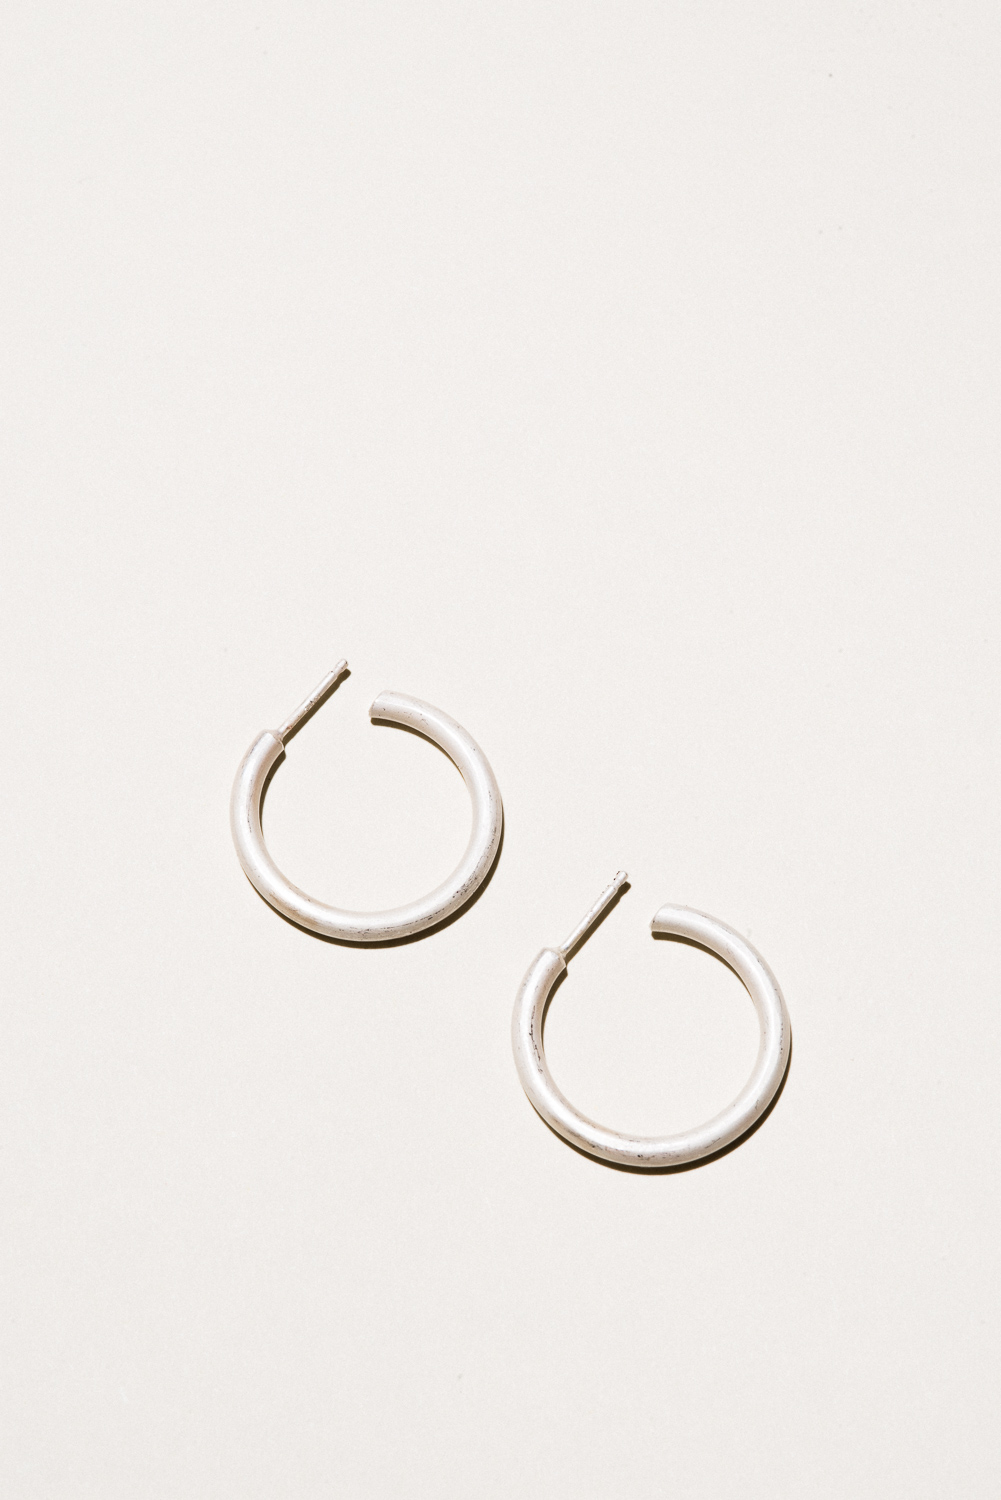 Medium Silver Classic Hoops - .9 in diameterSterling Silver, Raw FinishHand Smithed$90